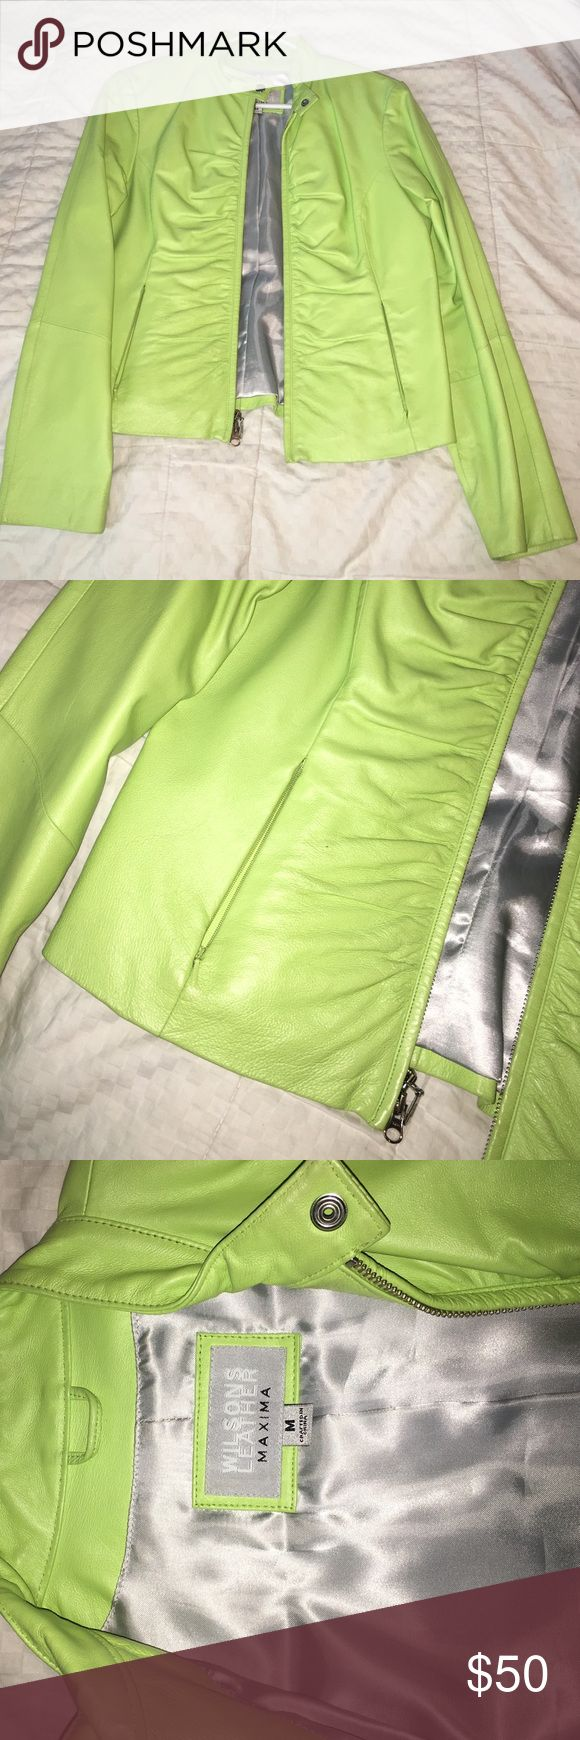 ⚜Wilson's Leather Lime Green Biker Jacket Sz M Wilsons leather brand. Leather jacket. Biker jacket length; hits at waistband. Zips up the front and snaps around the collar. Double zipper, both pull in great condition. The zipper has rouching in the front. has front pockets that zip; both still zip. Like green color. Only ever treated with proper leather cleaner. Inside liner is silver. Women's size medium. Wilsons Leather Jackets & Coats